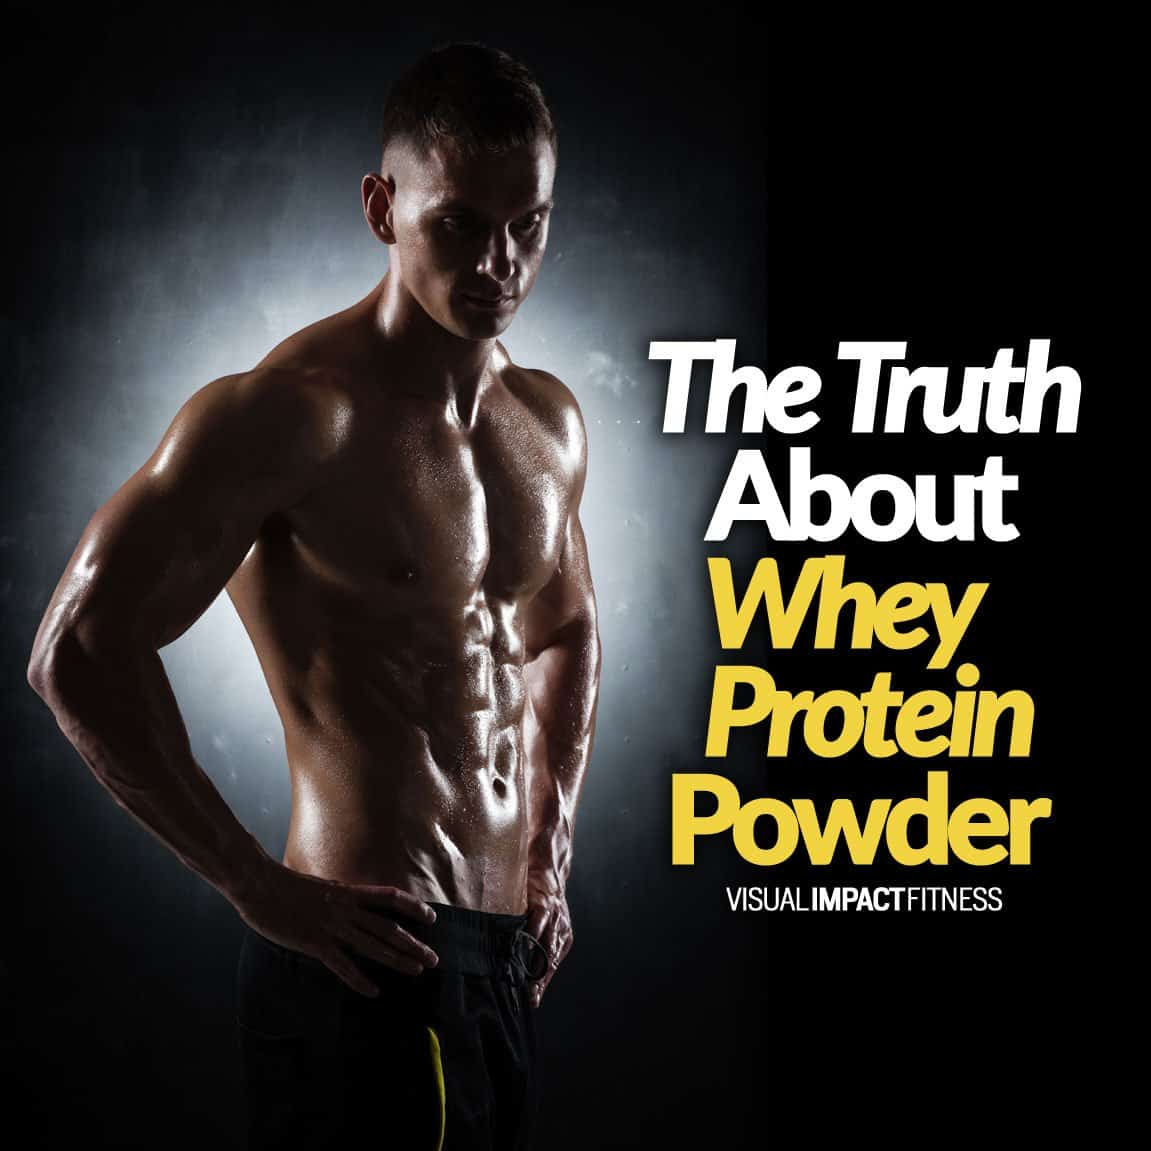 The Truth About Whey Protein Powder